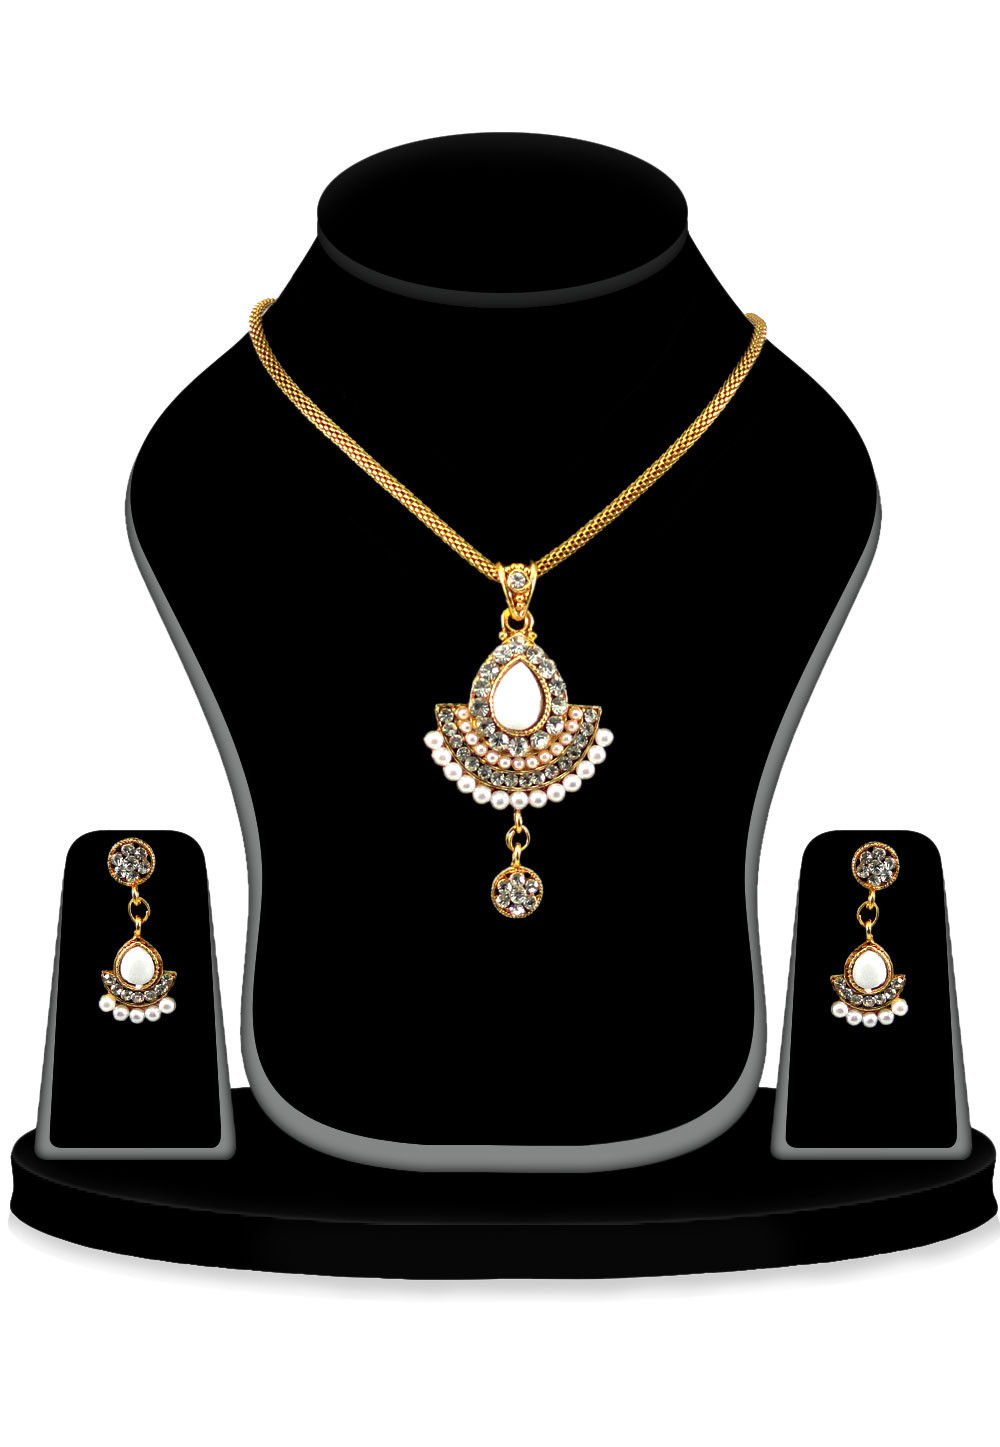 Stone Studdded Pendant Set in Golden and White